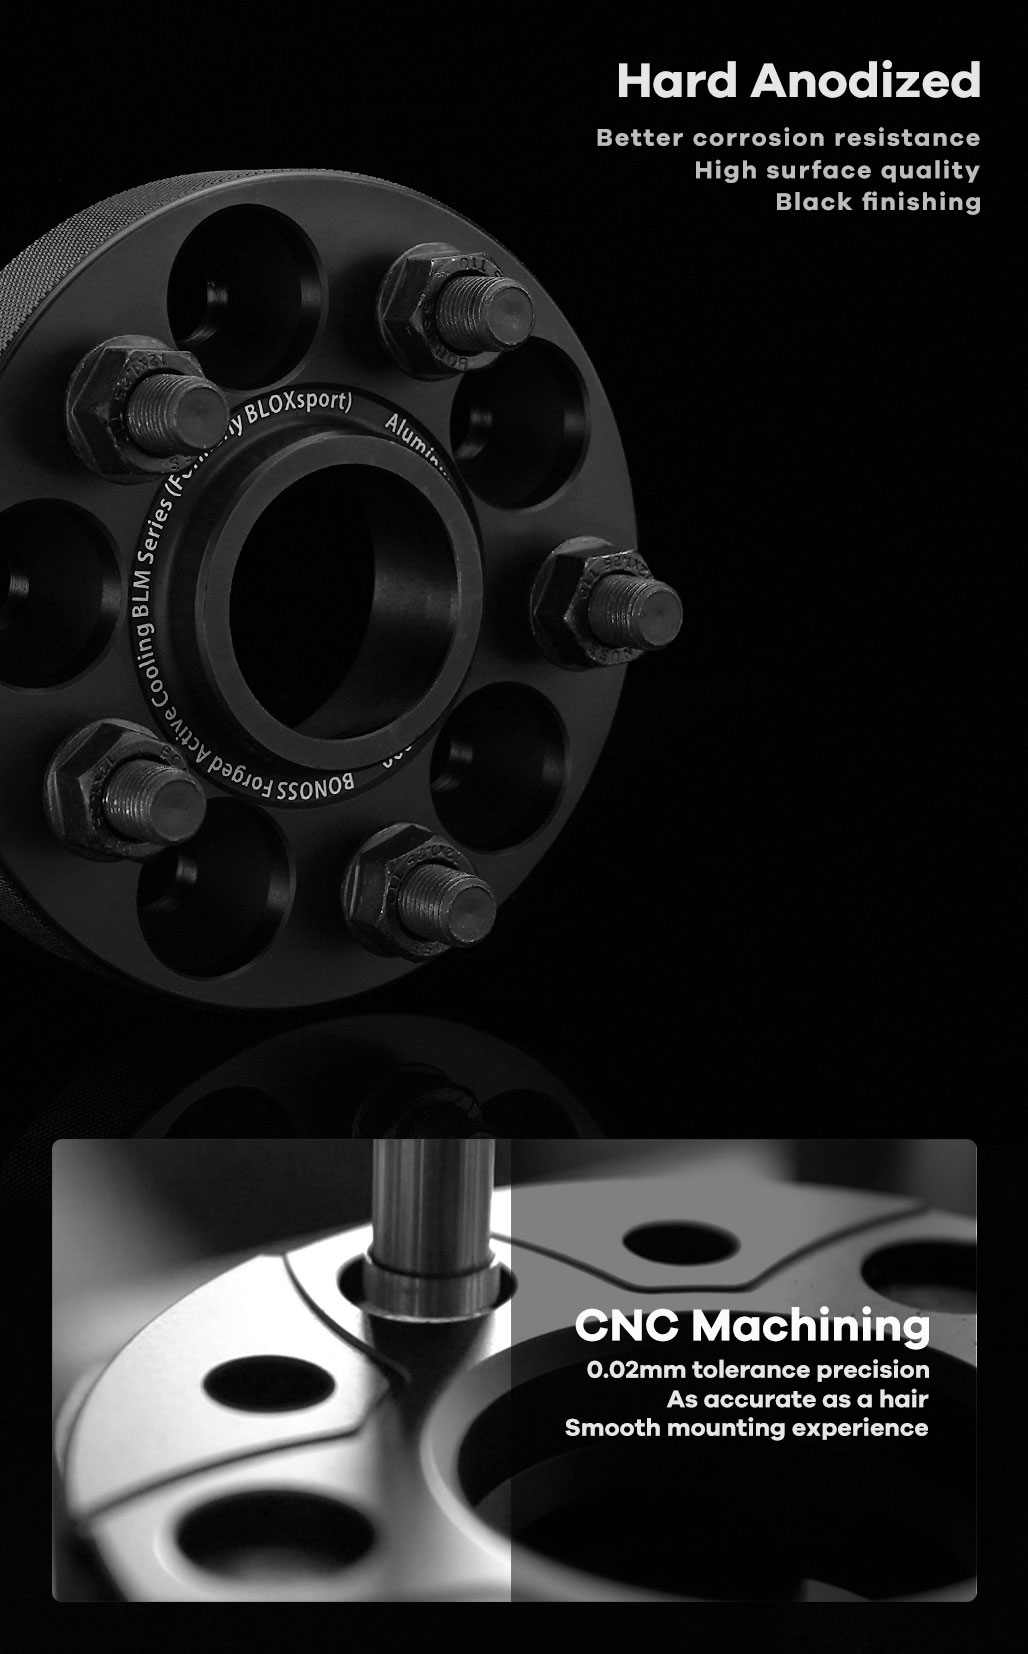 BONOSS-forged-active-cooling-wheel-spacer-subaru-BRZ-5x100-56.1-M12x1.5-6061T6-by-grace-2